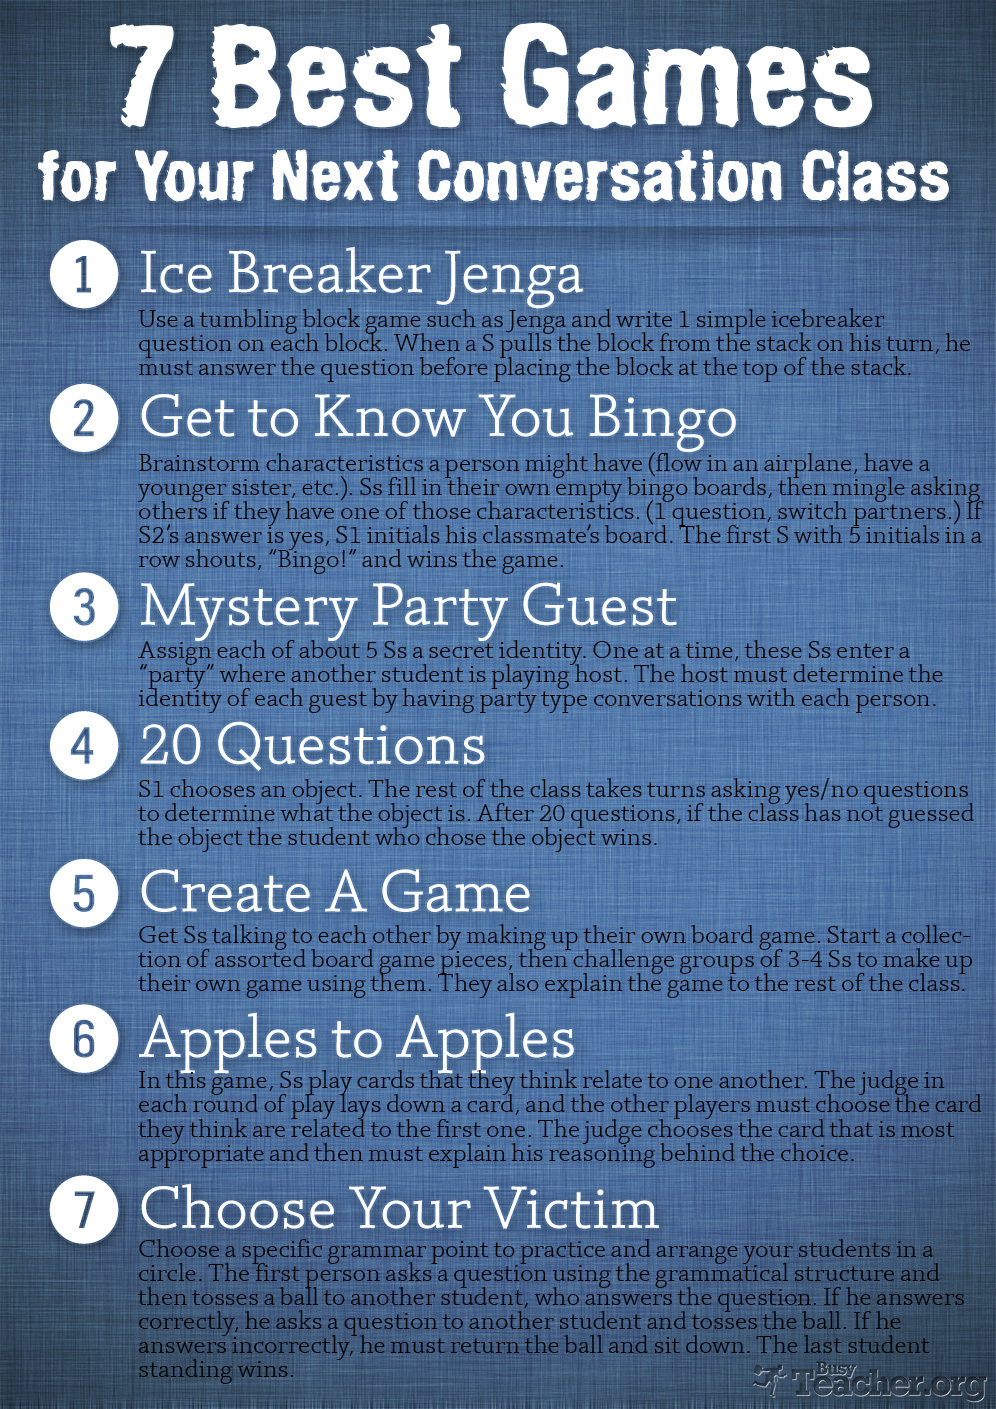 7 Best Games for Your Next Conversation Class: Poster